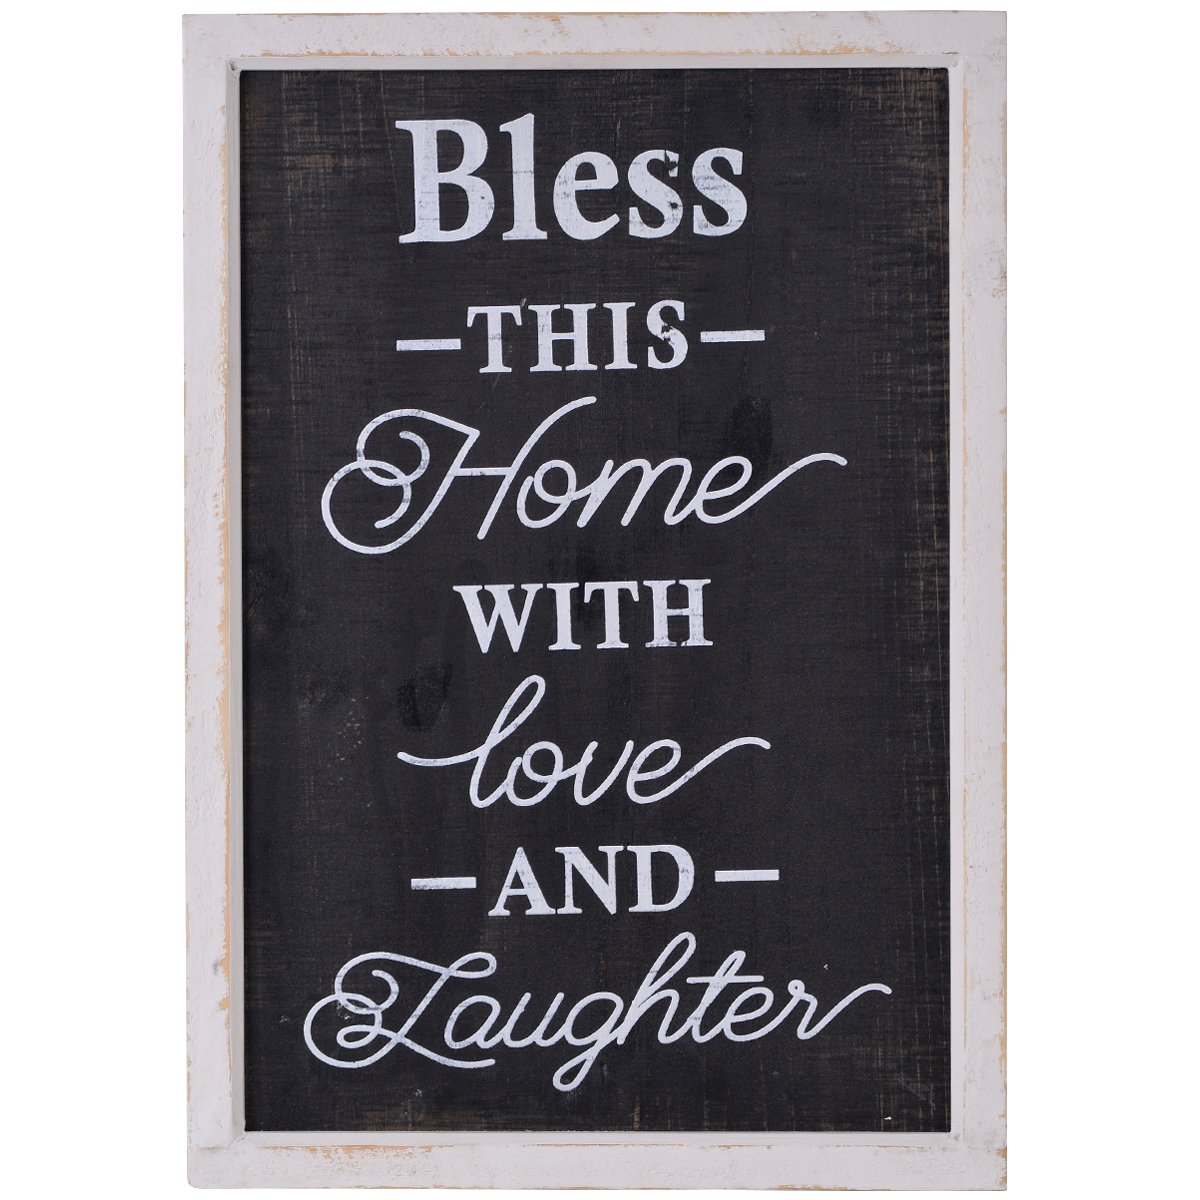 "NIKKY HOME 14"" x 20"" Rustic Wood Framed Wall Sign Plaque with Quote Bless This Home with Love and Laughter"